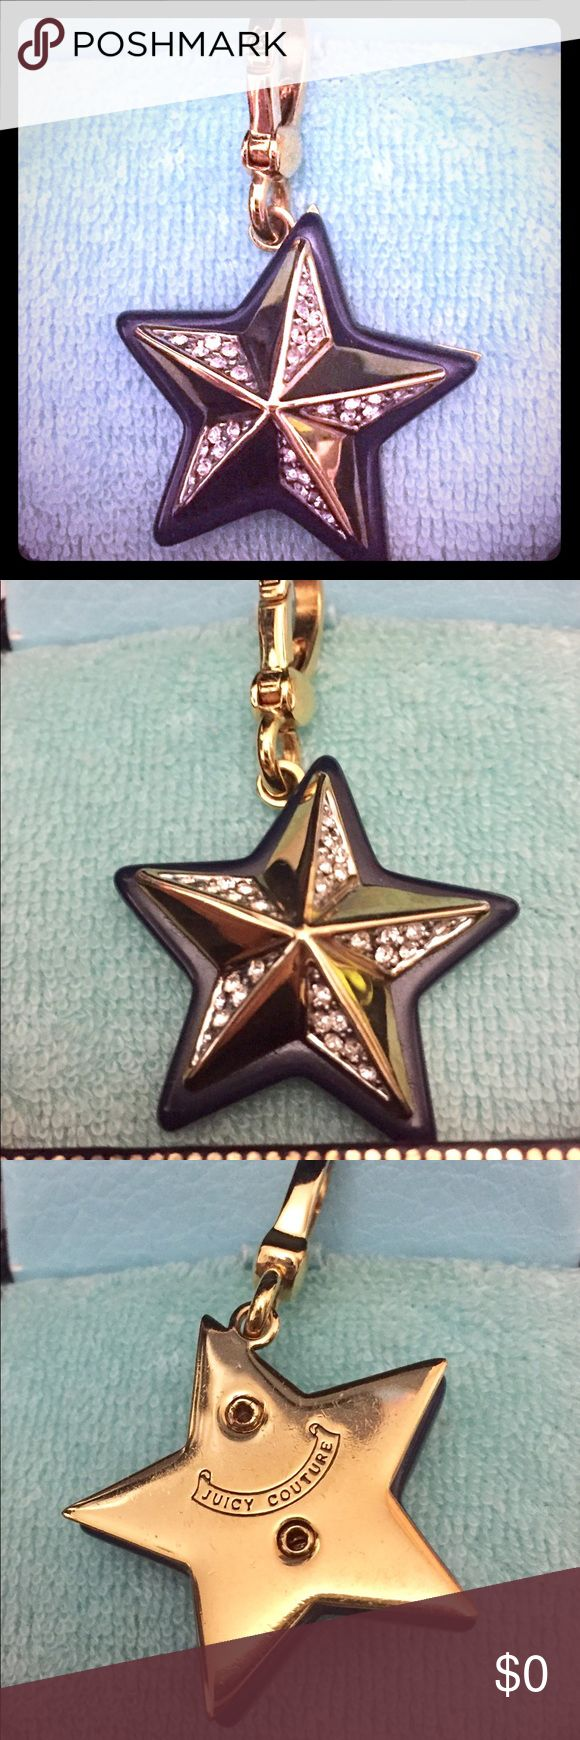 Juicy Couture Charm Juicy Couture Star ⭐️ Charm with blue trim and Pave stones. In excellent condition and kinda hard to find. ⭐️⭐️⭐️⭐️⭐️⭐️ Not for sale, just sharing from my personal collection. Juicy Couture Jewelry